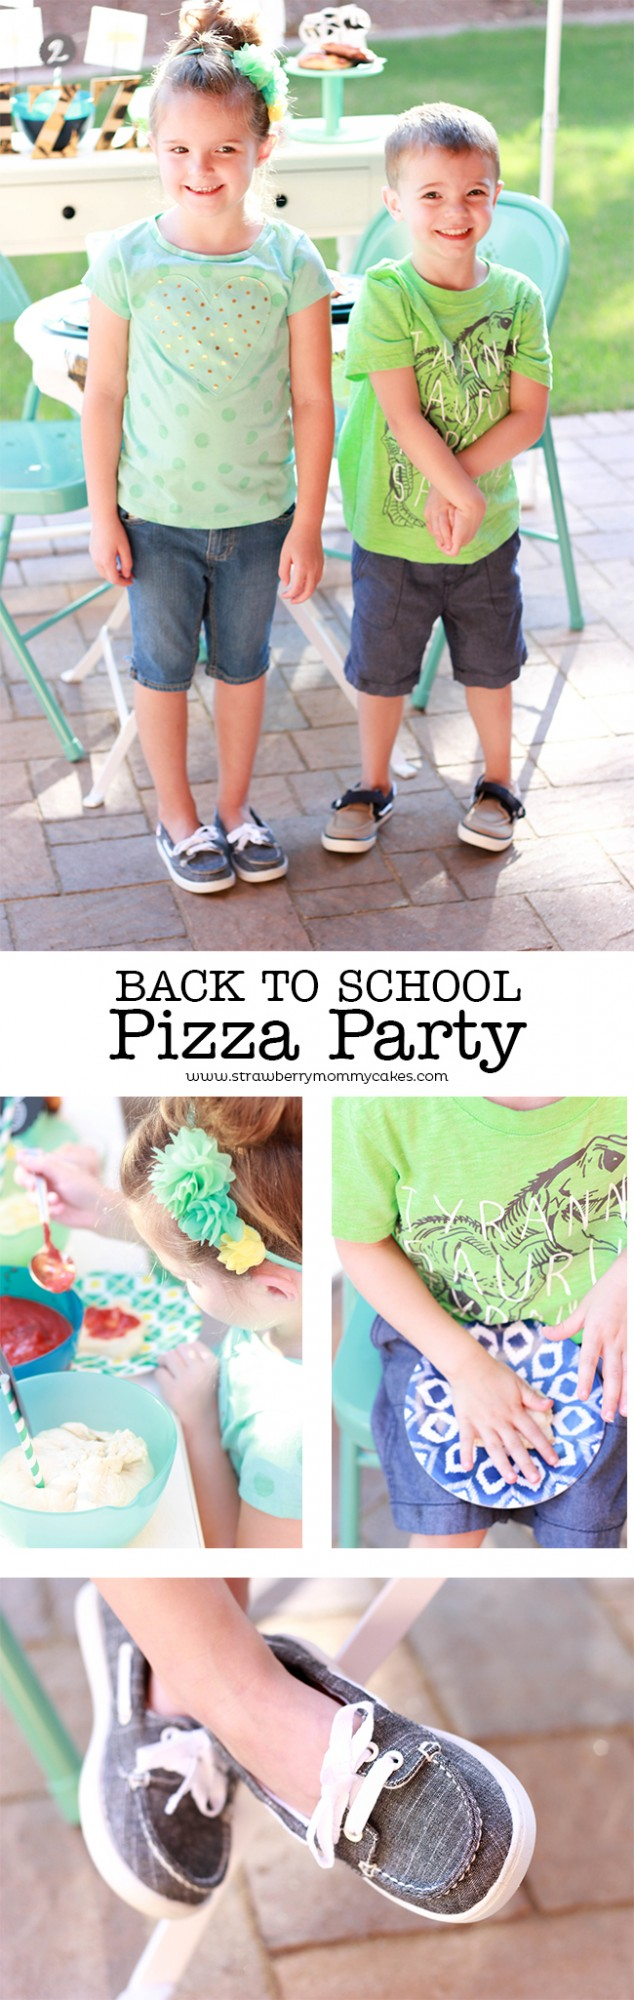 Let your kids be creative with this Back to School Pizza Party! #ohsofamous #sponsored @famousfootwear http://clvr.li/osfbts